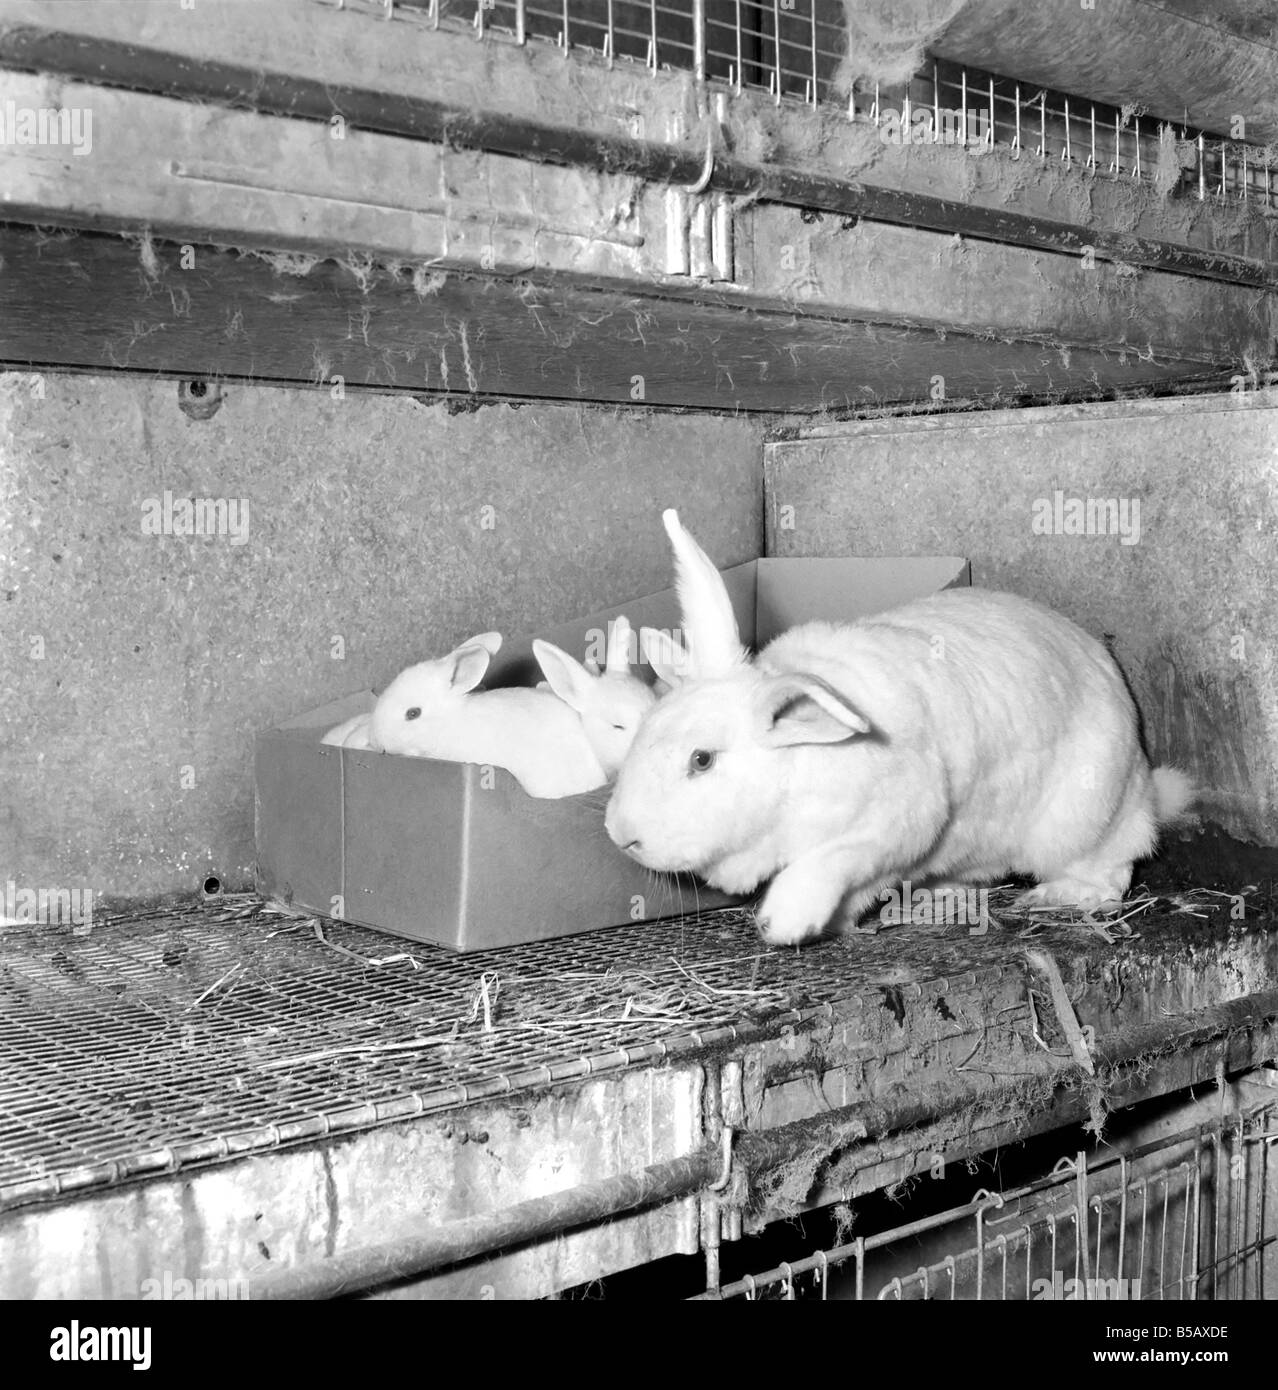 Rabbits bred in cage at a Rabbit farm. 1962 A871-002 - Stock Image